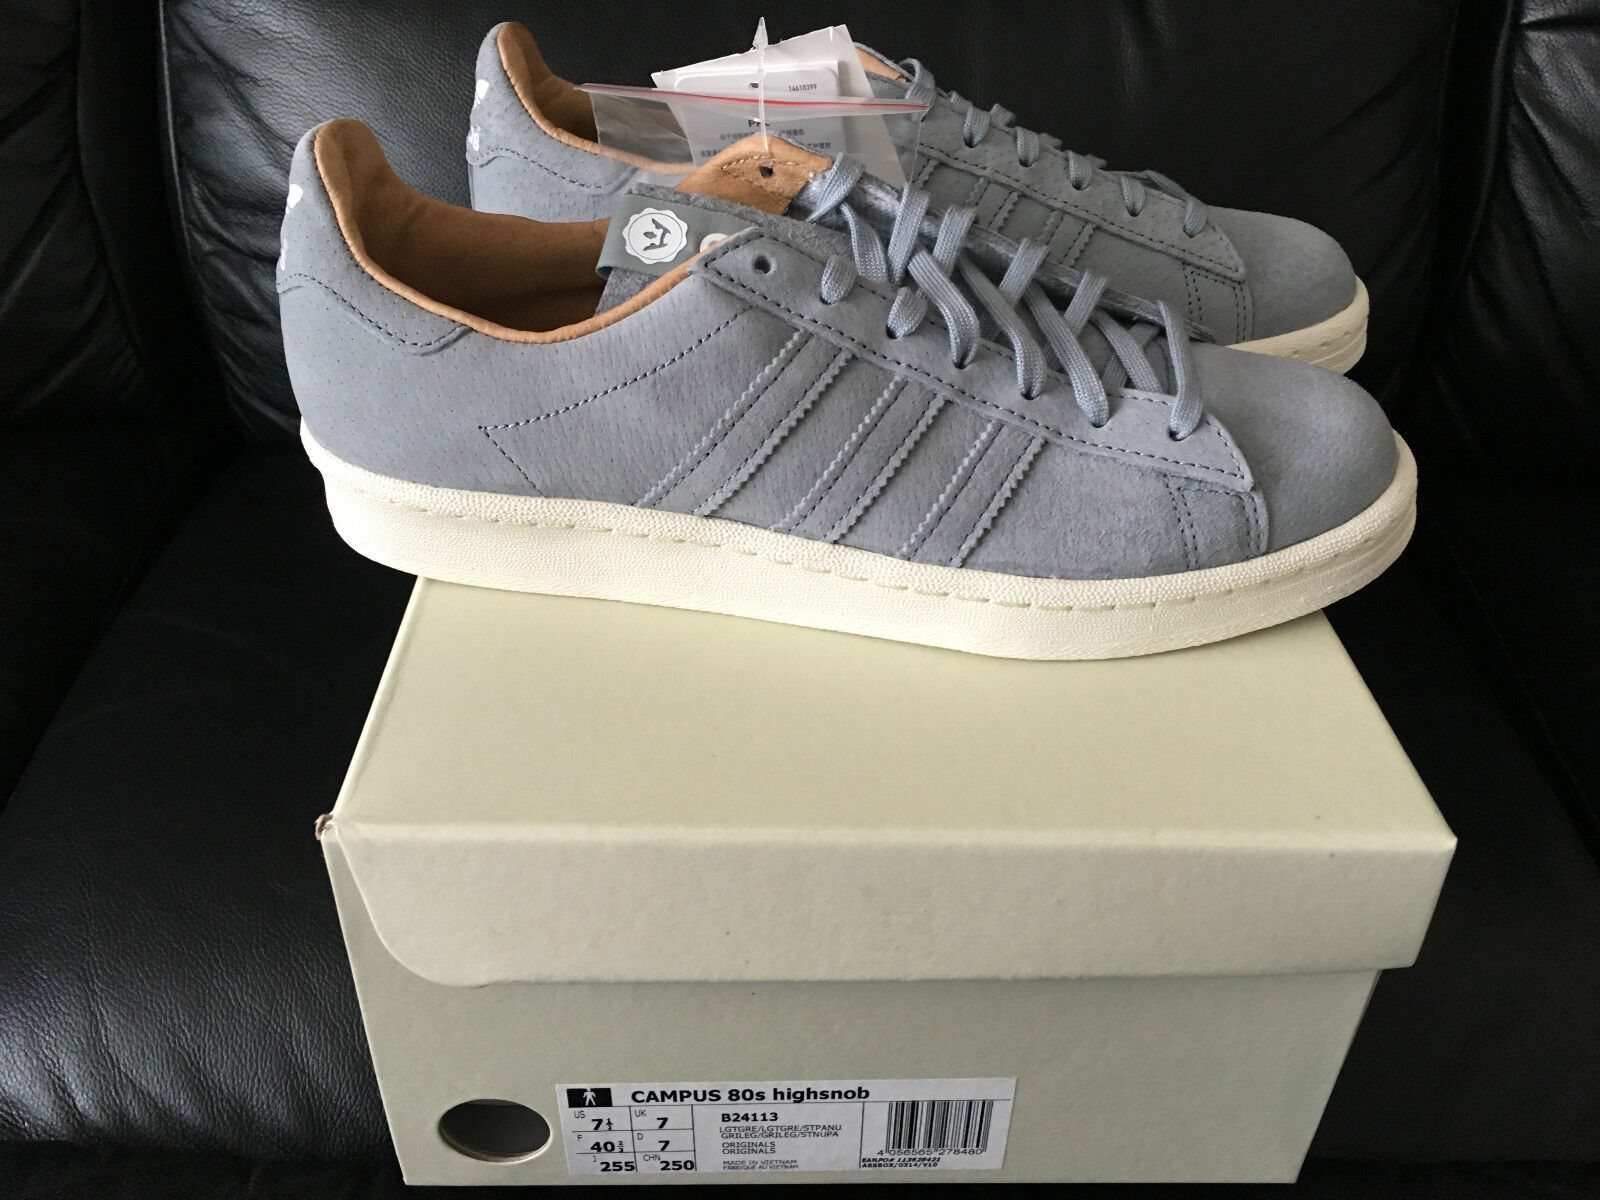 ADIDAS CONSORTIUM X HIGH SNOBIETY CAMPUS 2018 Taille7 & 8  NEW